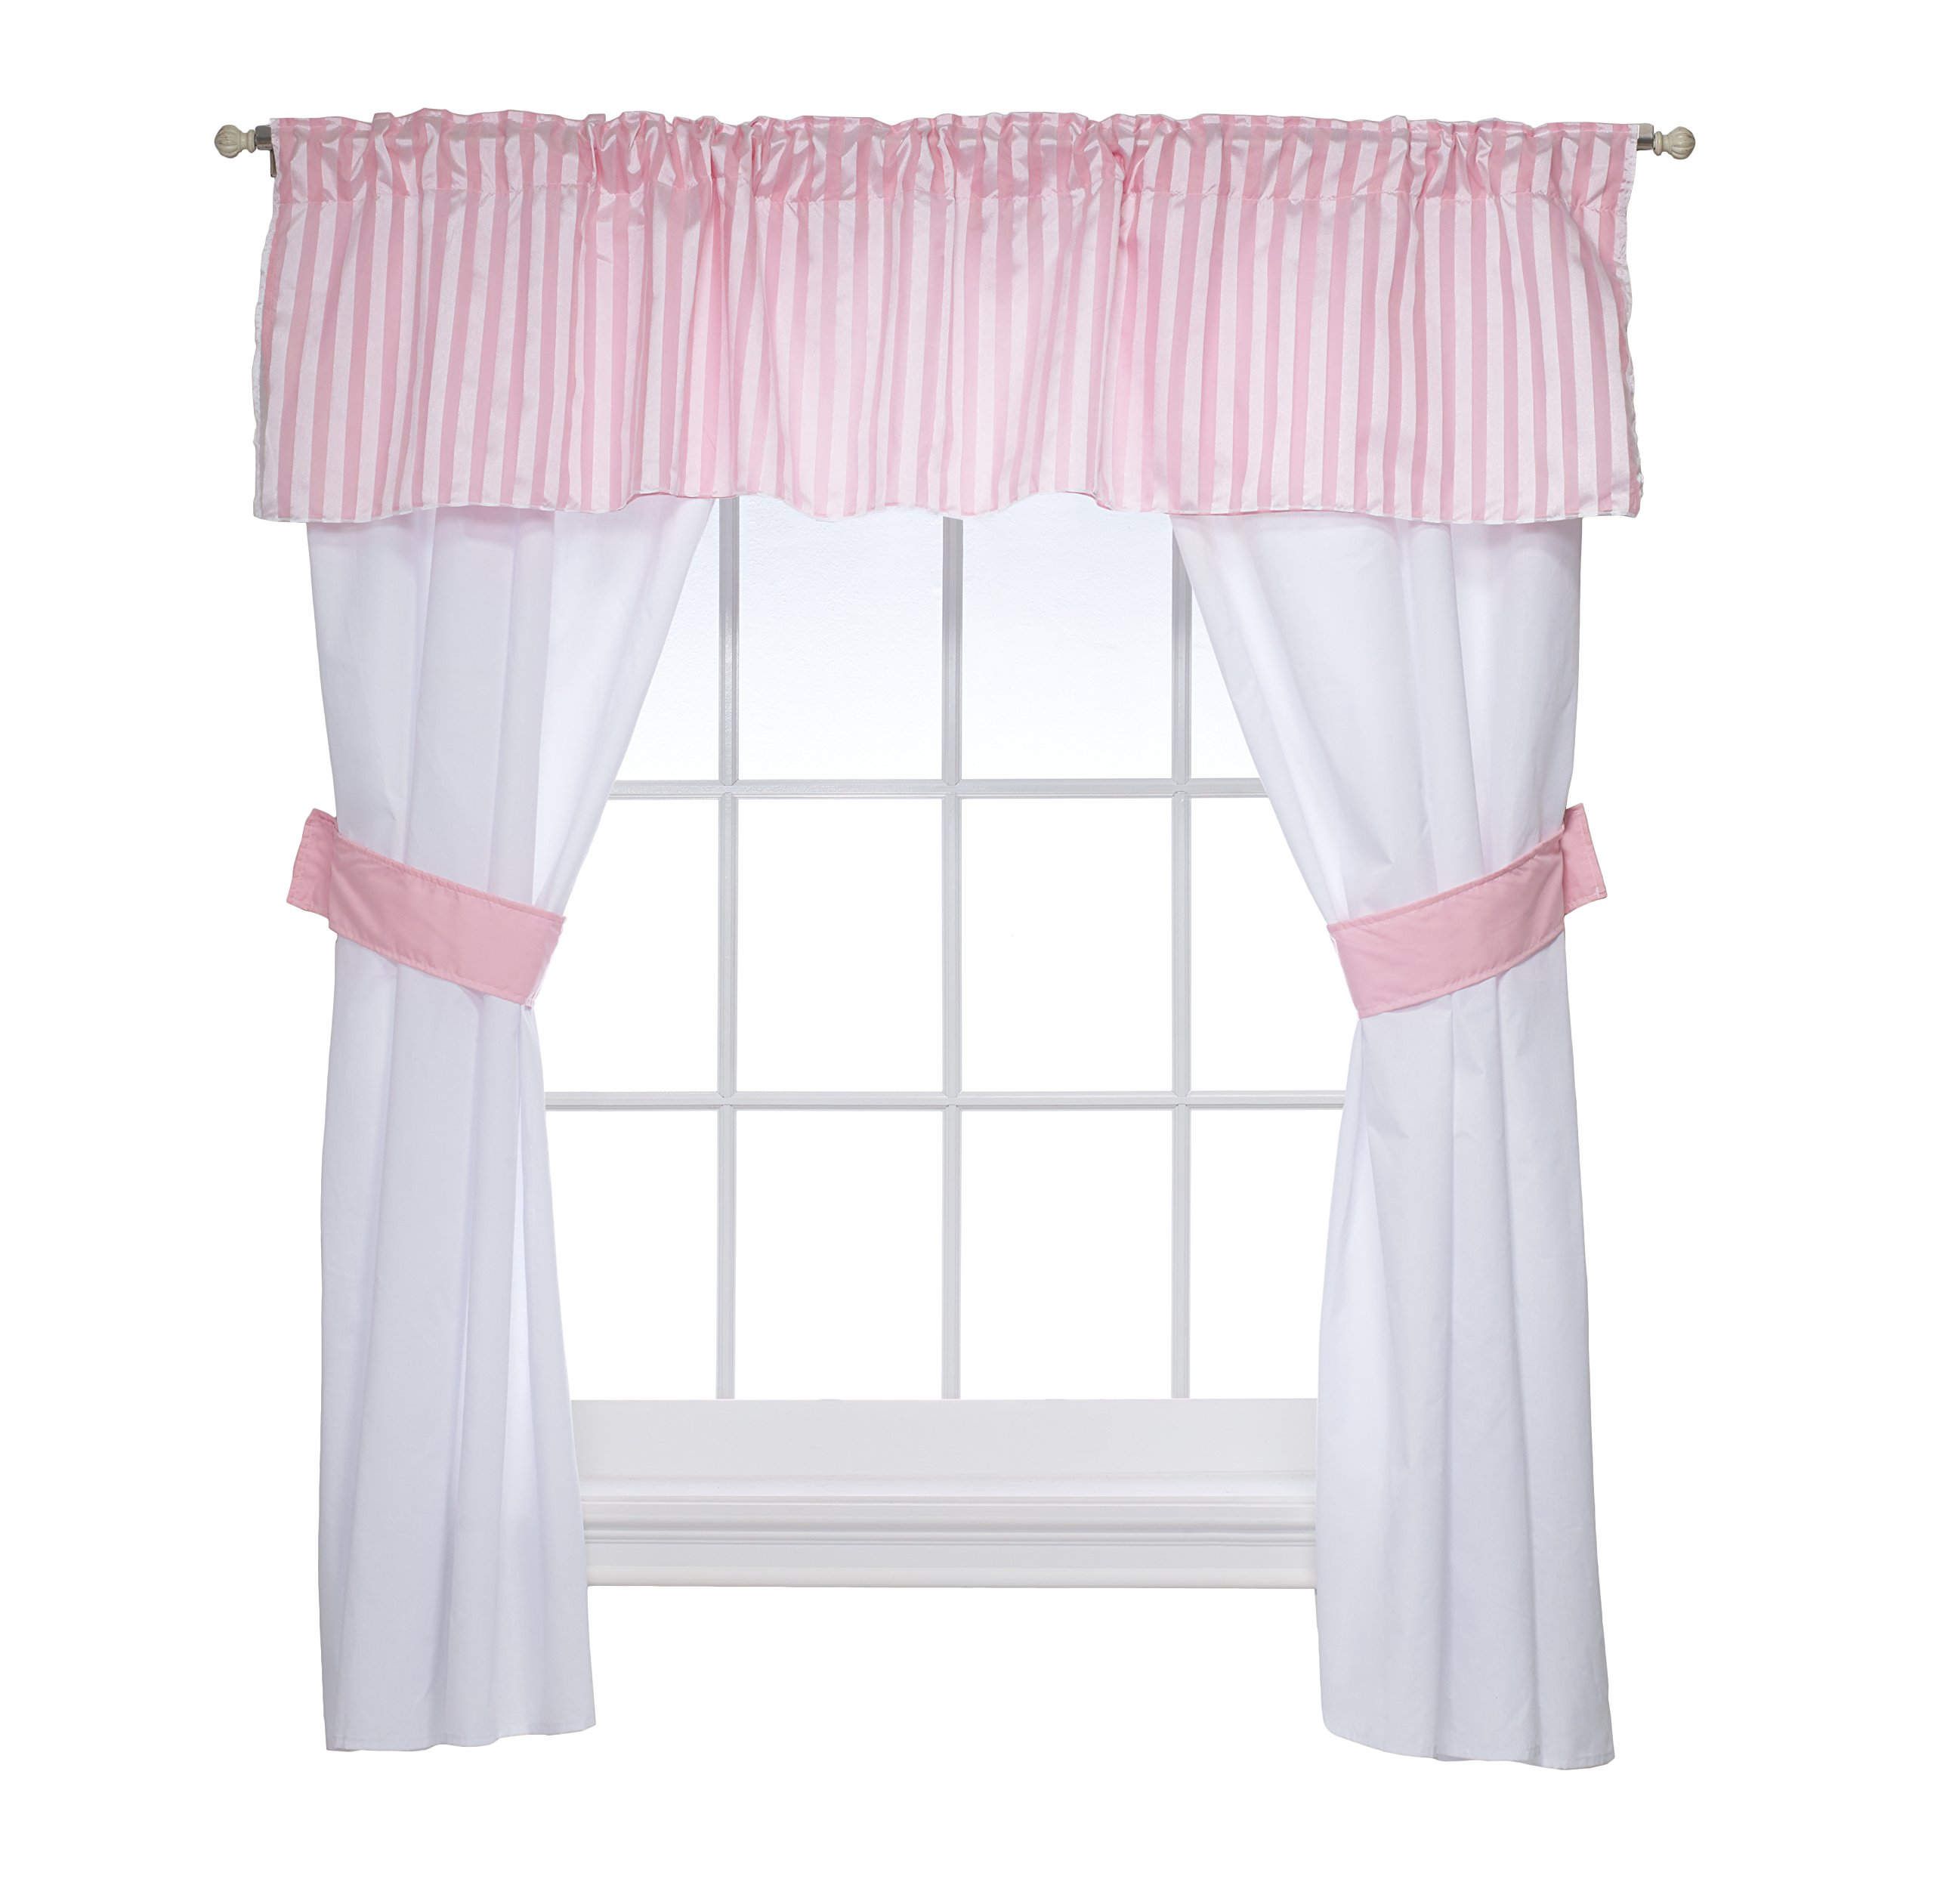 Baby Doll Candyland 5 Piece Window Valance and Curtain Set, Pink by Baby Doll